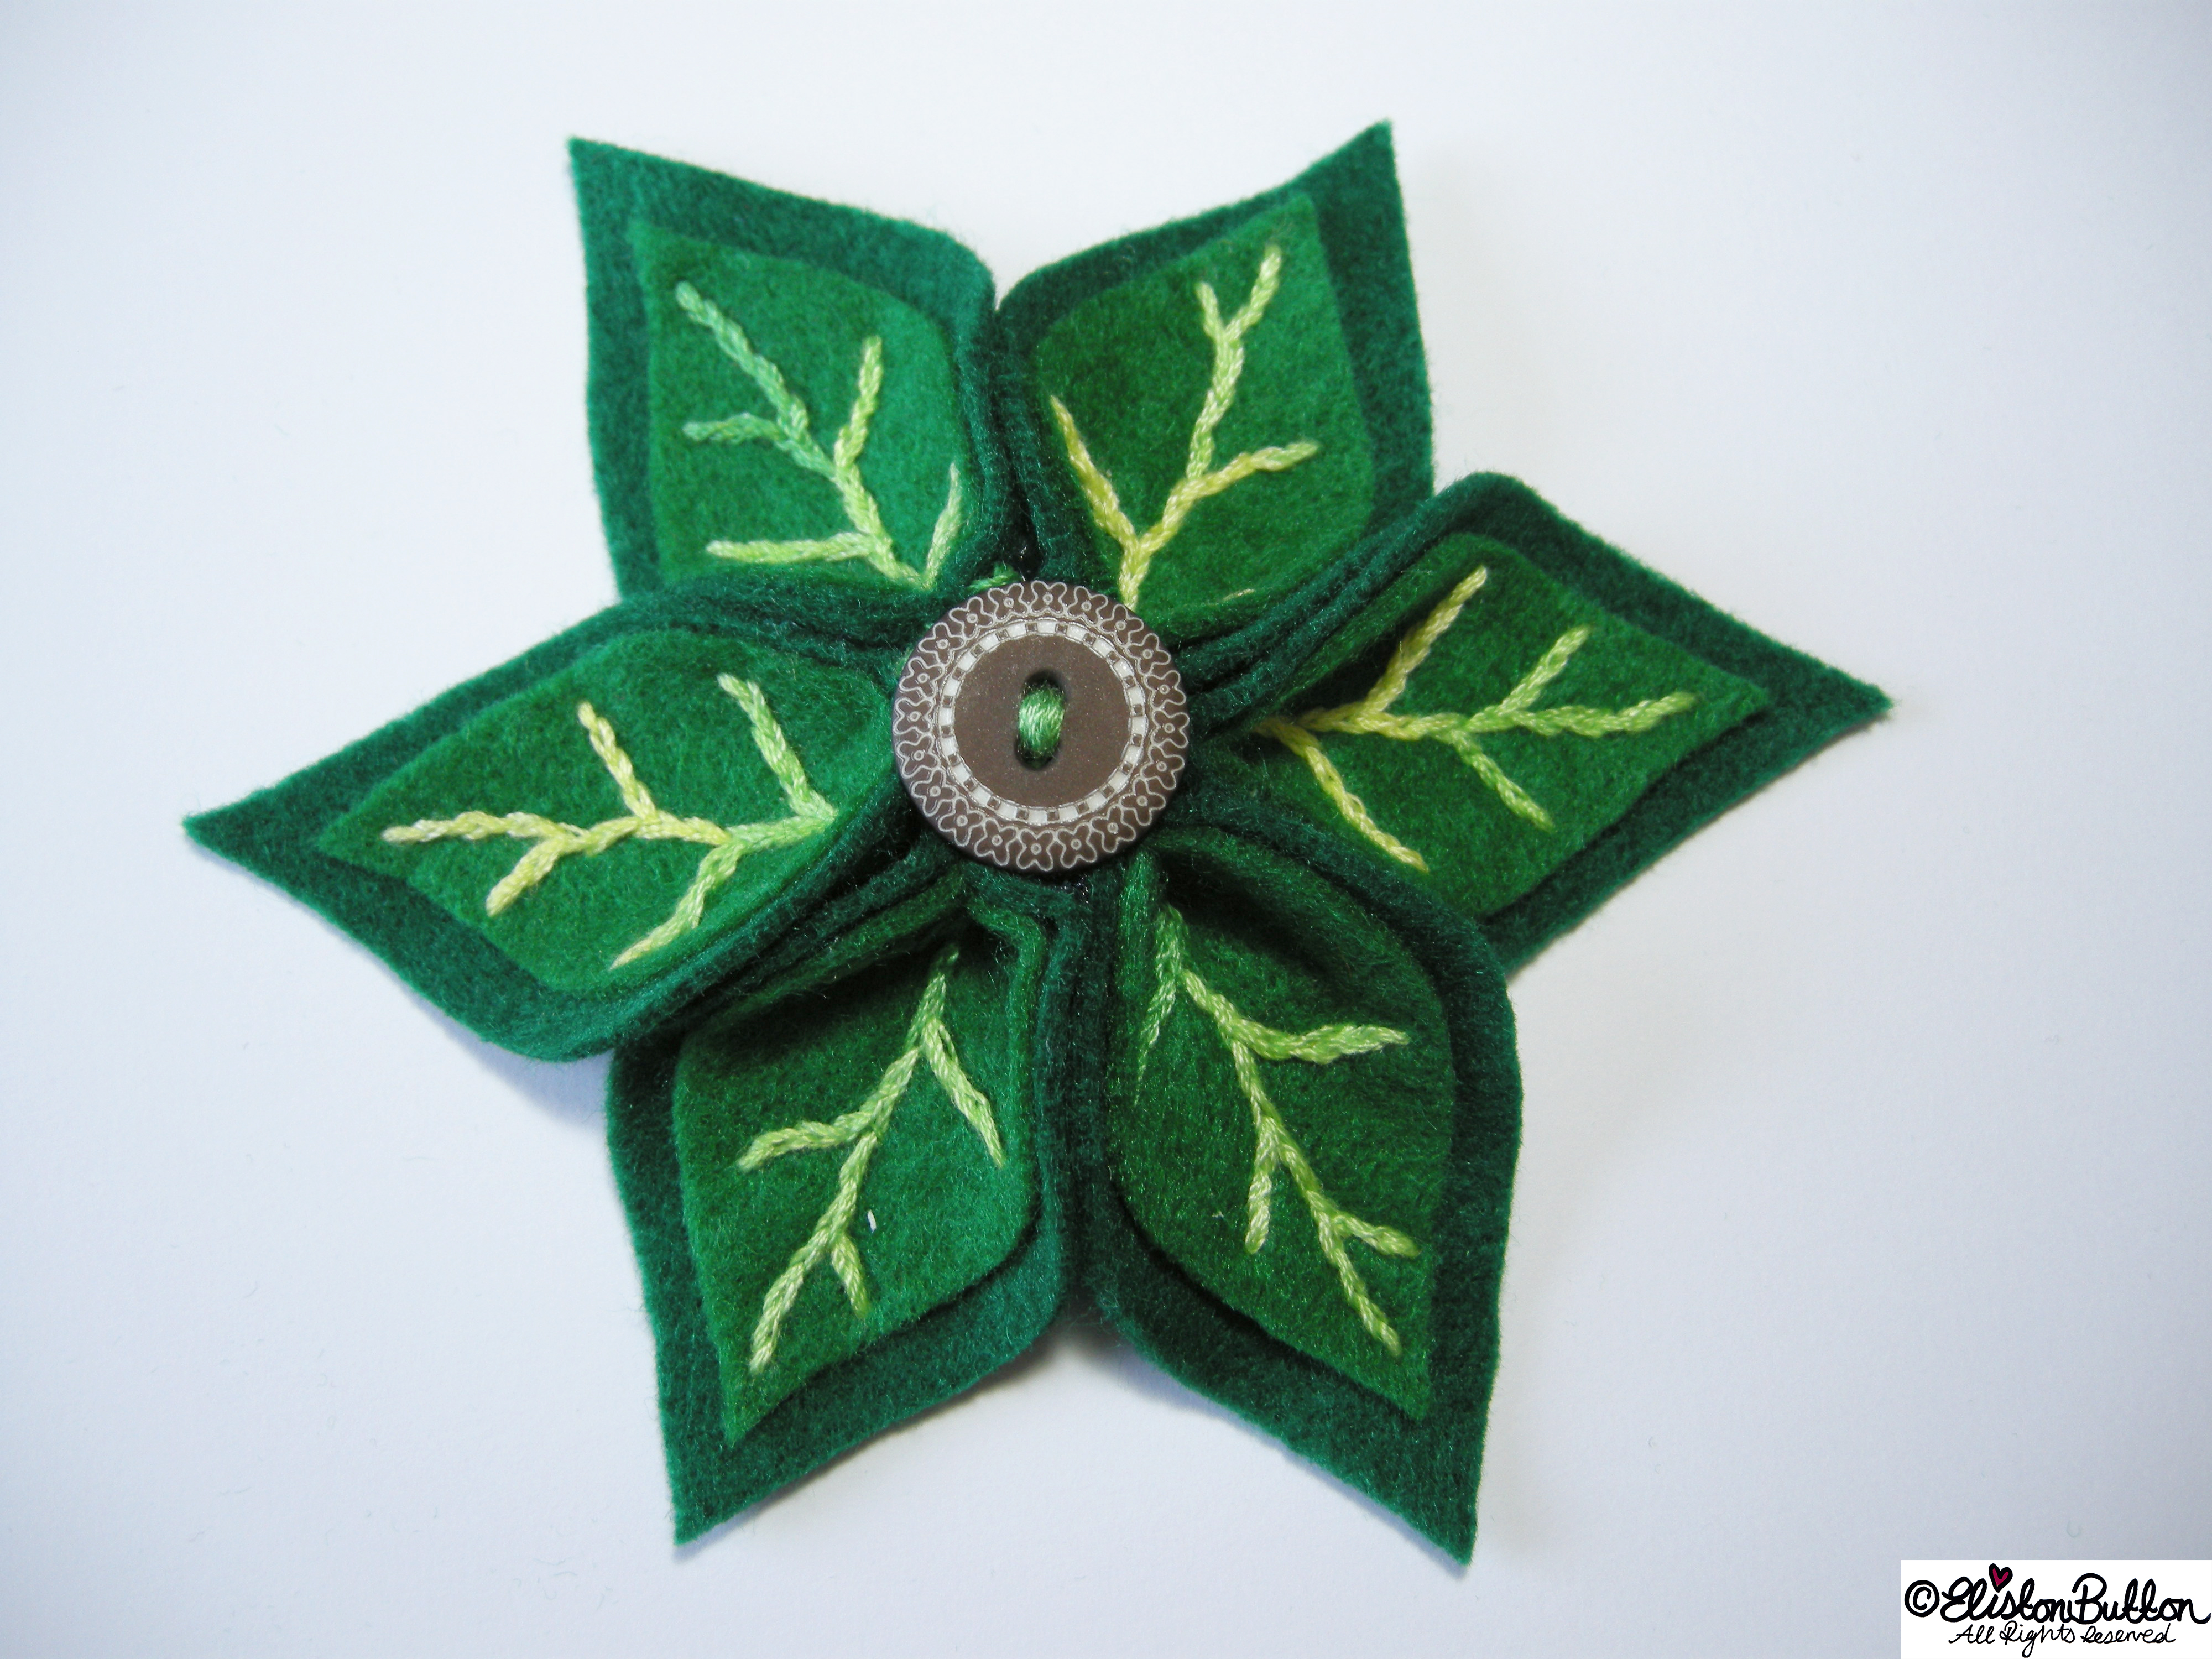 Leafy Greens Embroidered Felt Flower and Leaf Brooch - 27 Before 27 - Leafy Greens at www.elistonbutton.com - Eliston Button - That Crafty Kid – Art, Design, Craft & Adventure.